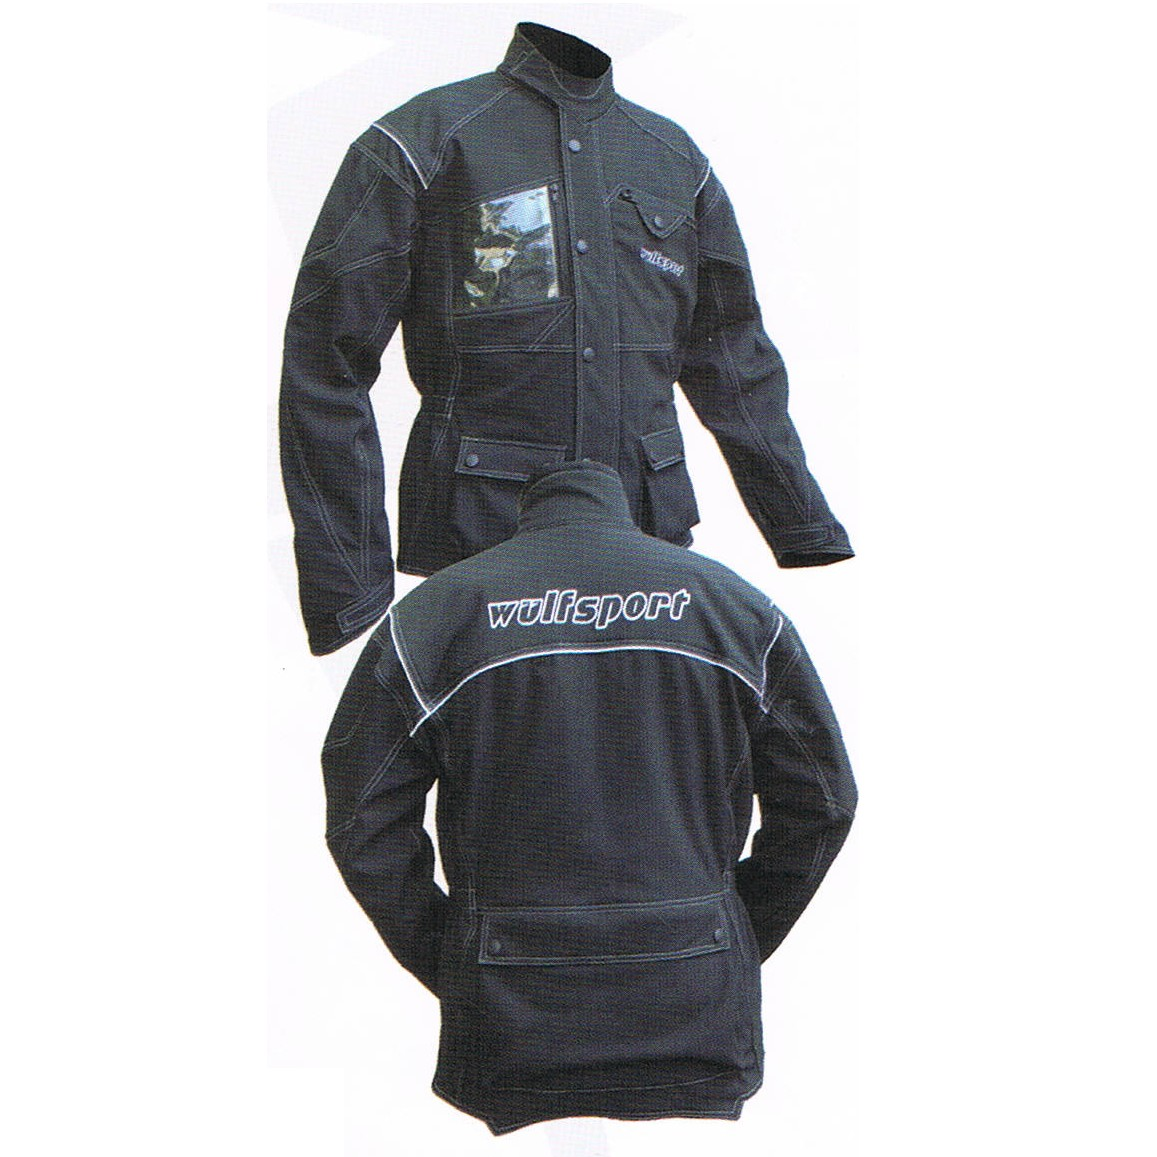 veste trial enduro quad rando trail wulf elite noir de s a xxxl. Black Bedroom Furniture Sets. Home Design Ideas